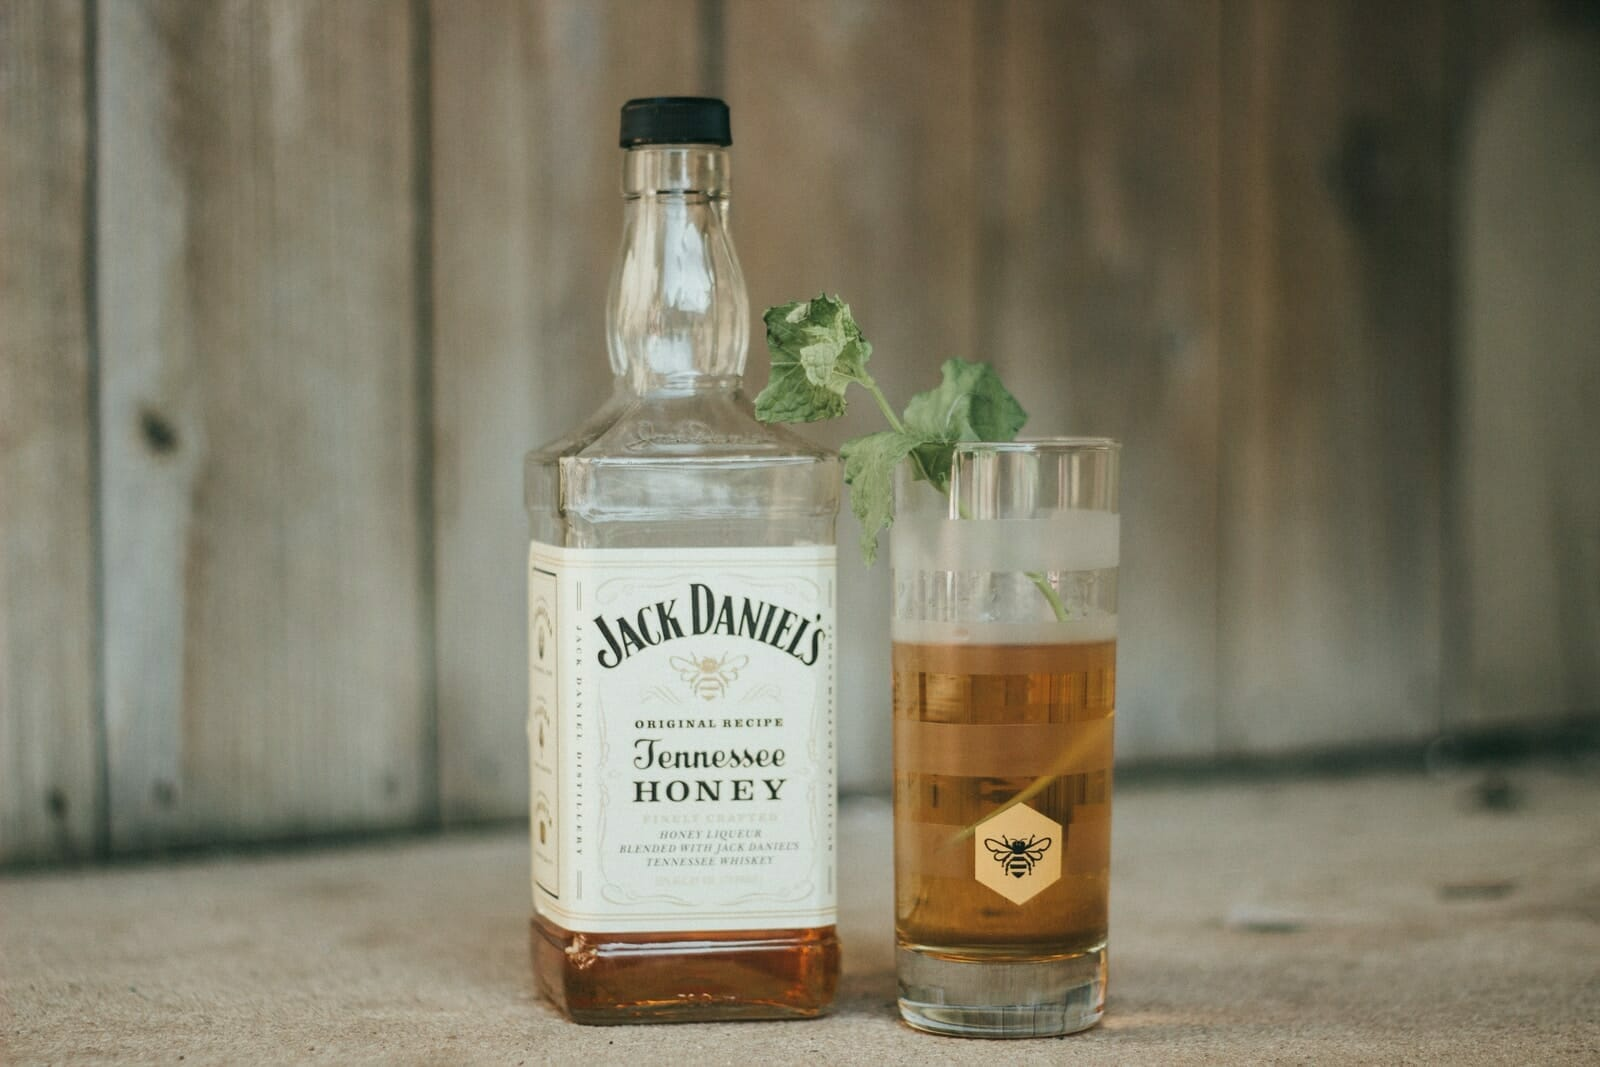 Jack Daniel's Tennessee Whiskey is featured on The Jam